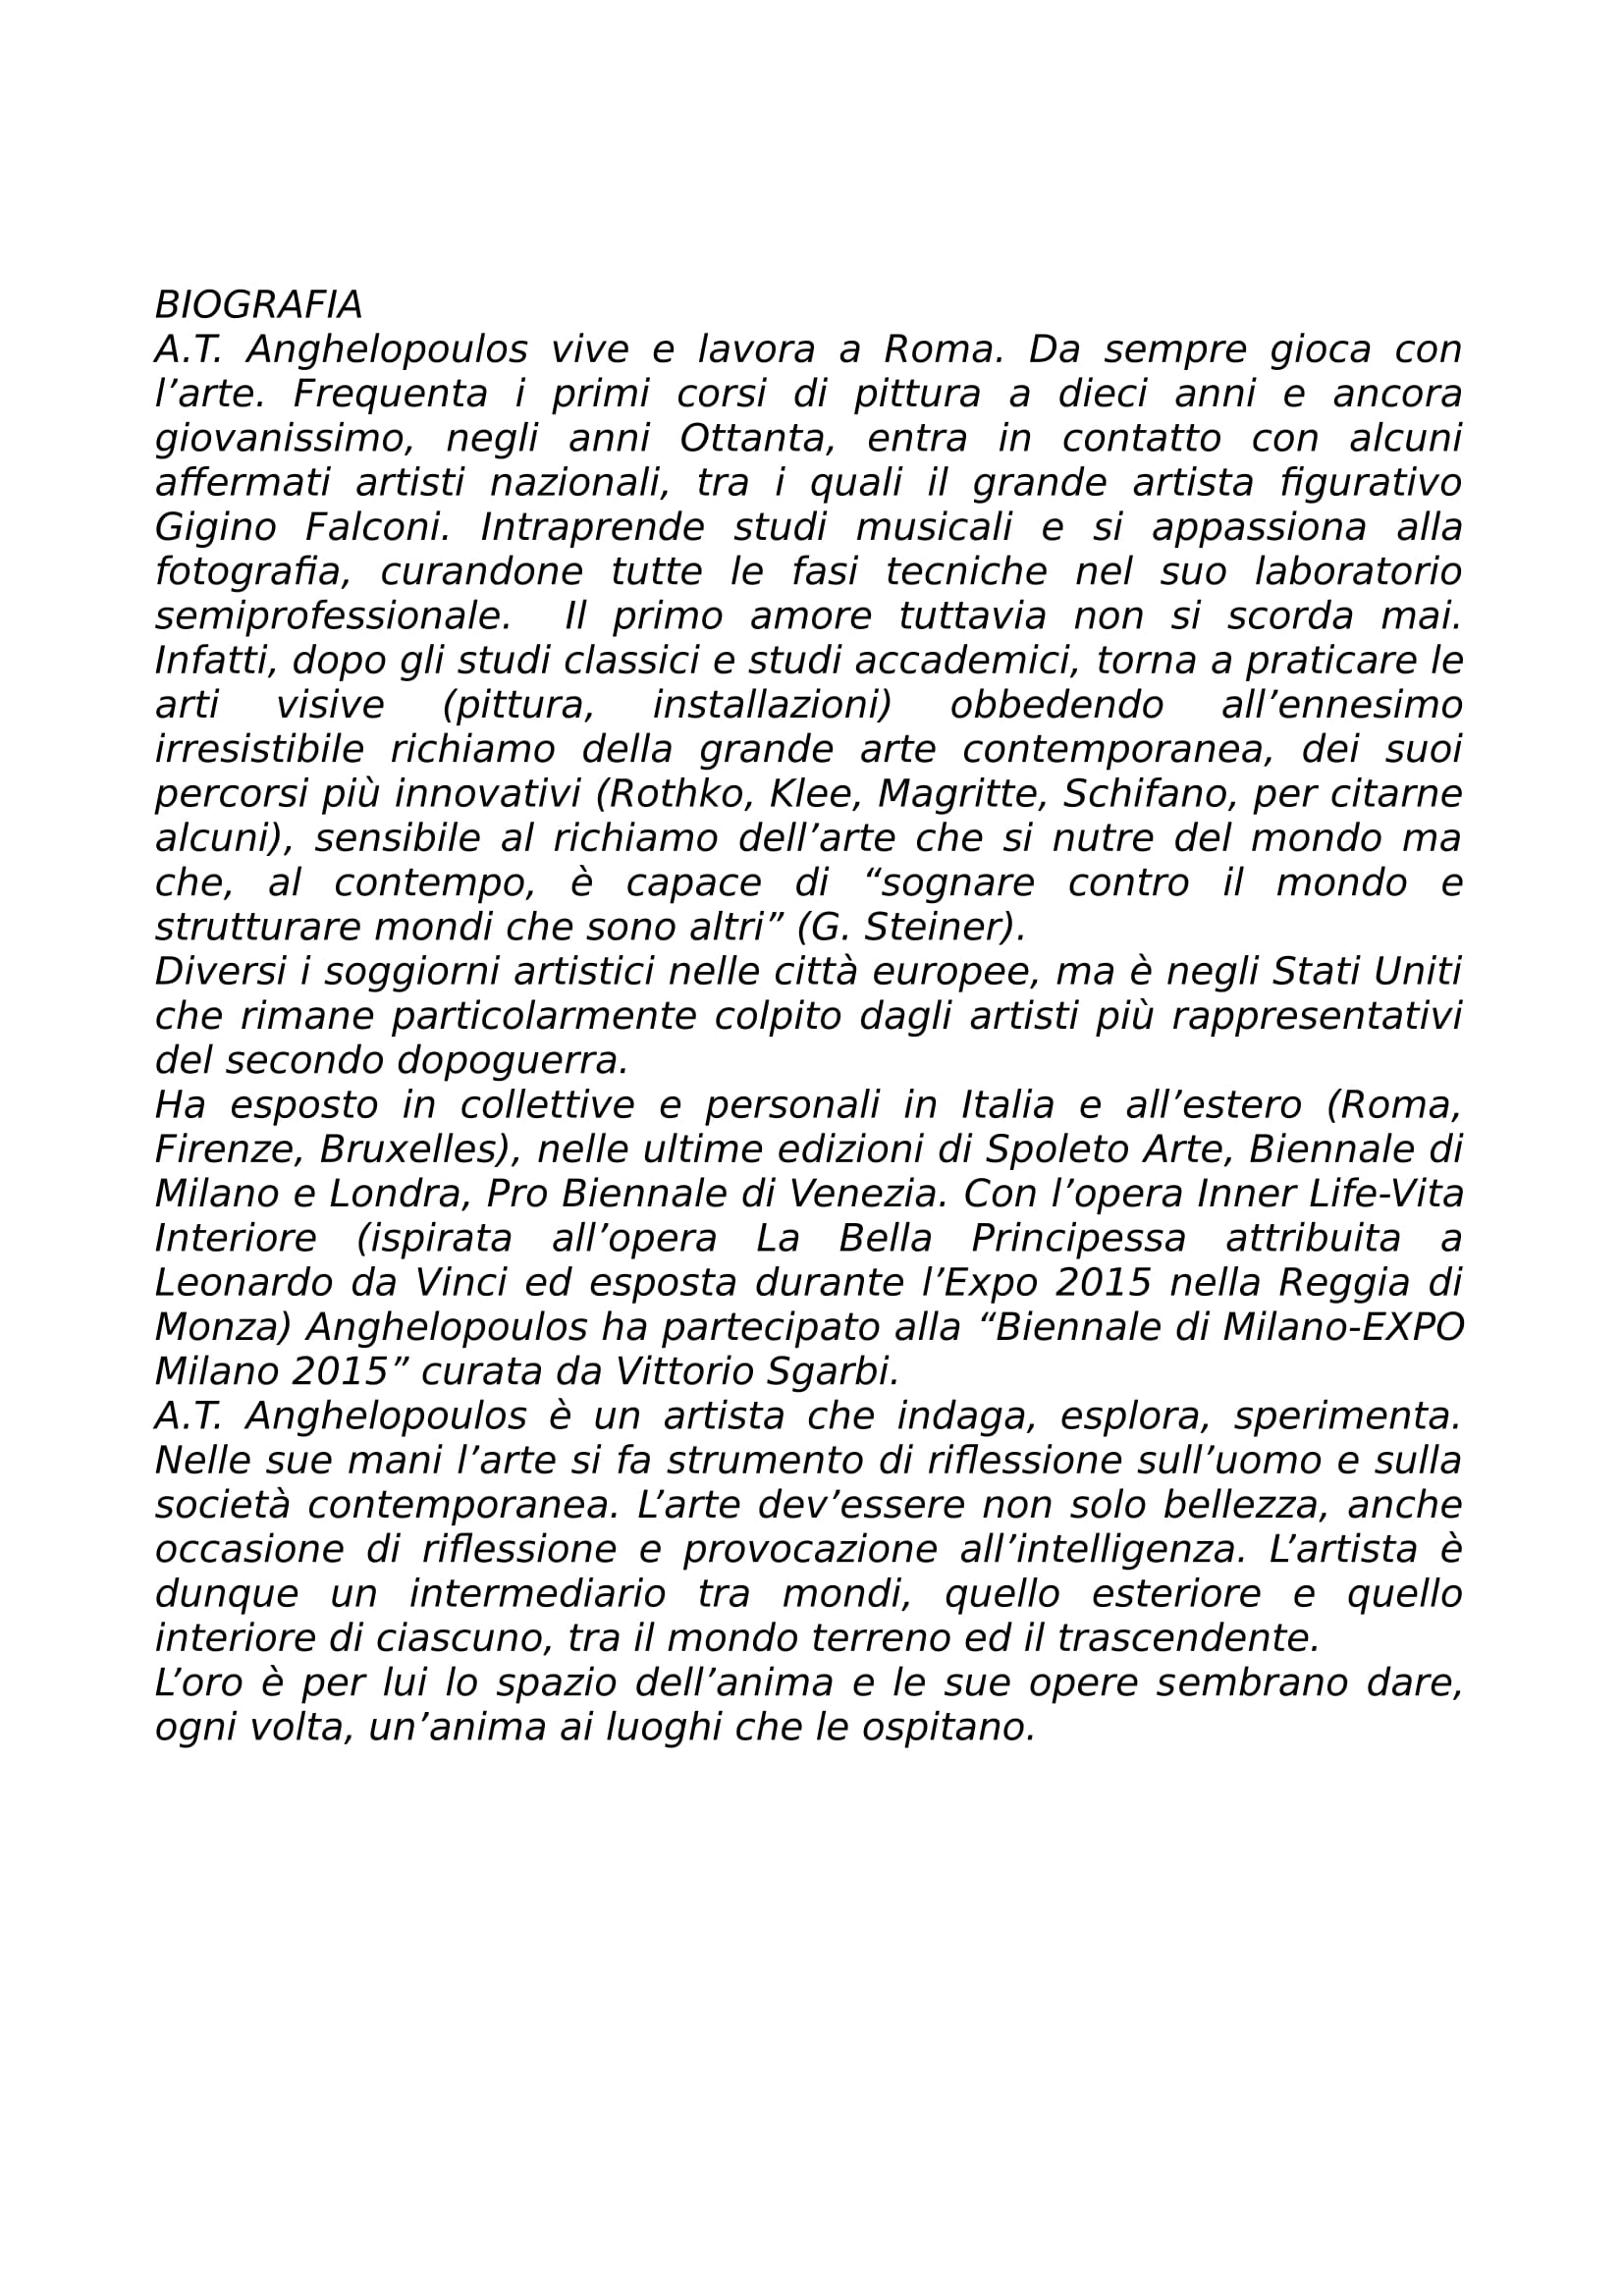 COM.STAMPA_A.T. Anghelopoulos_Trastevere-3